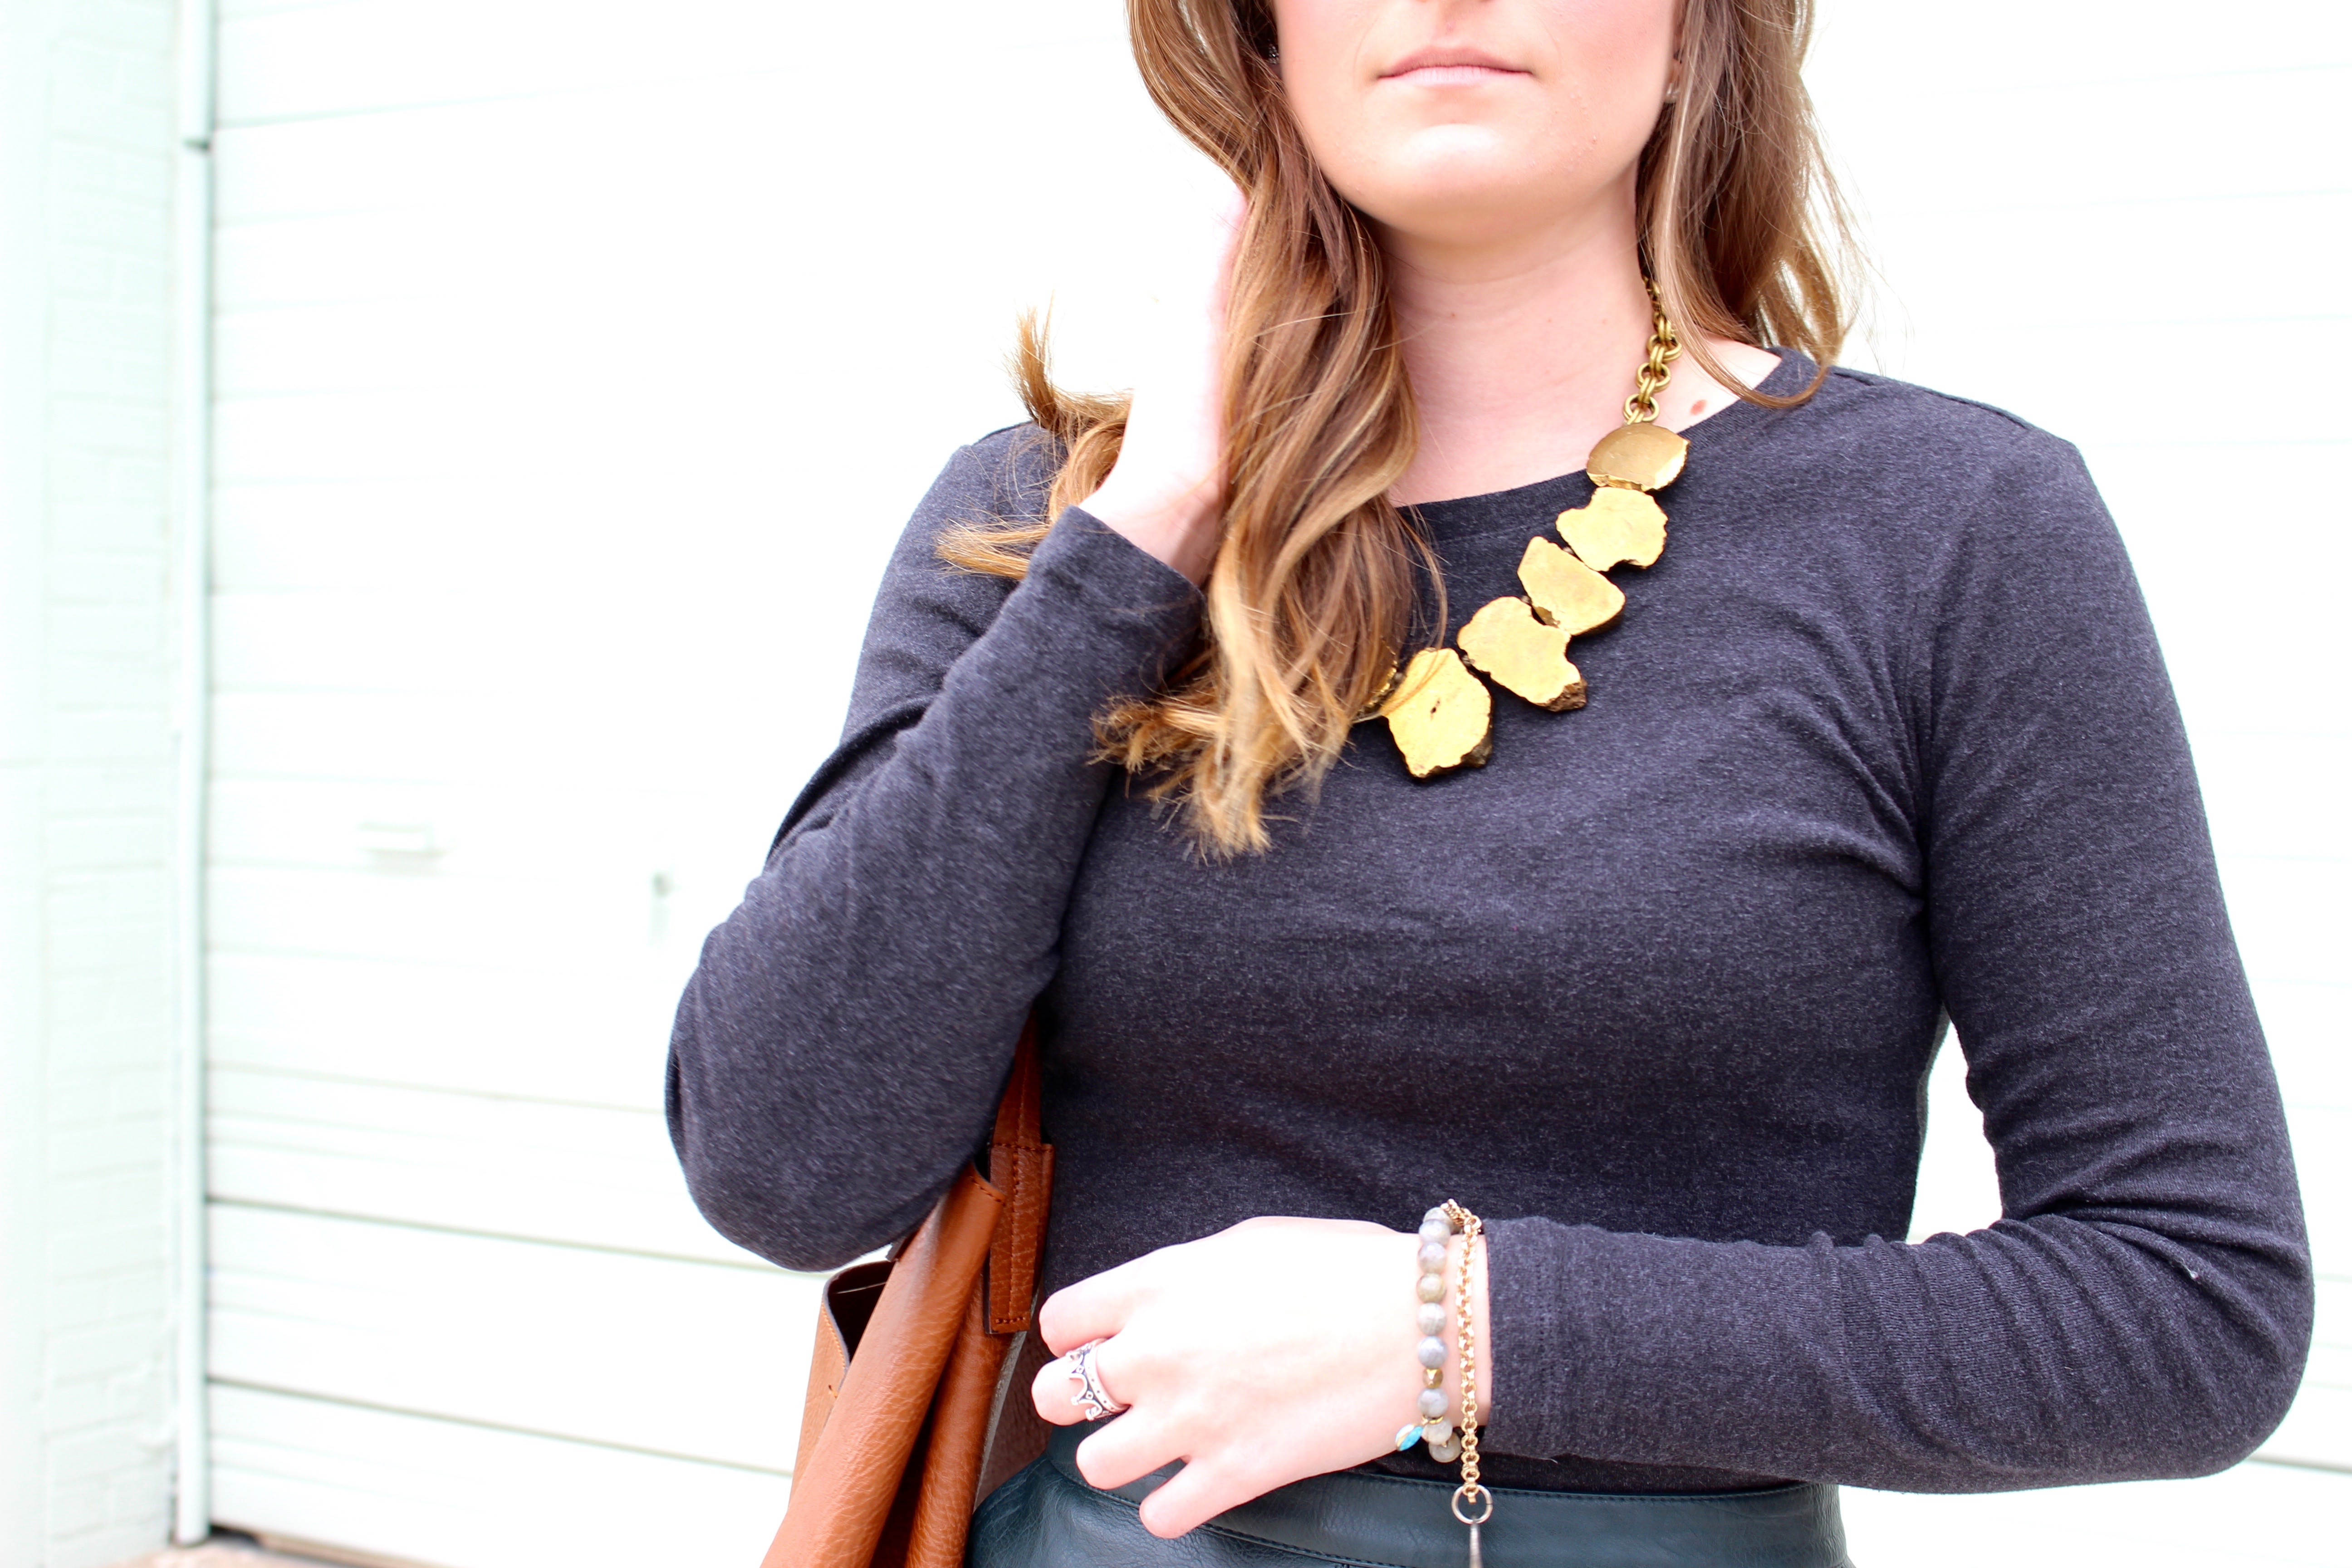 statement necklace and jewelry - Green Leather Skirt by popular Texas fashion blogger Audrey Madison Stowe